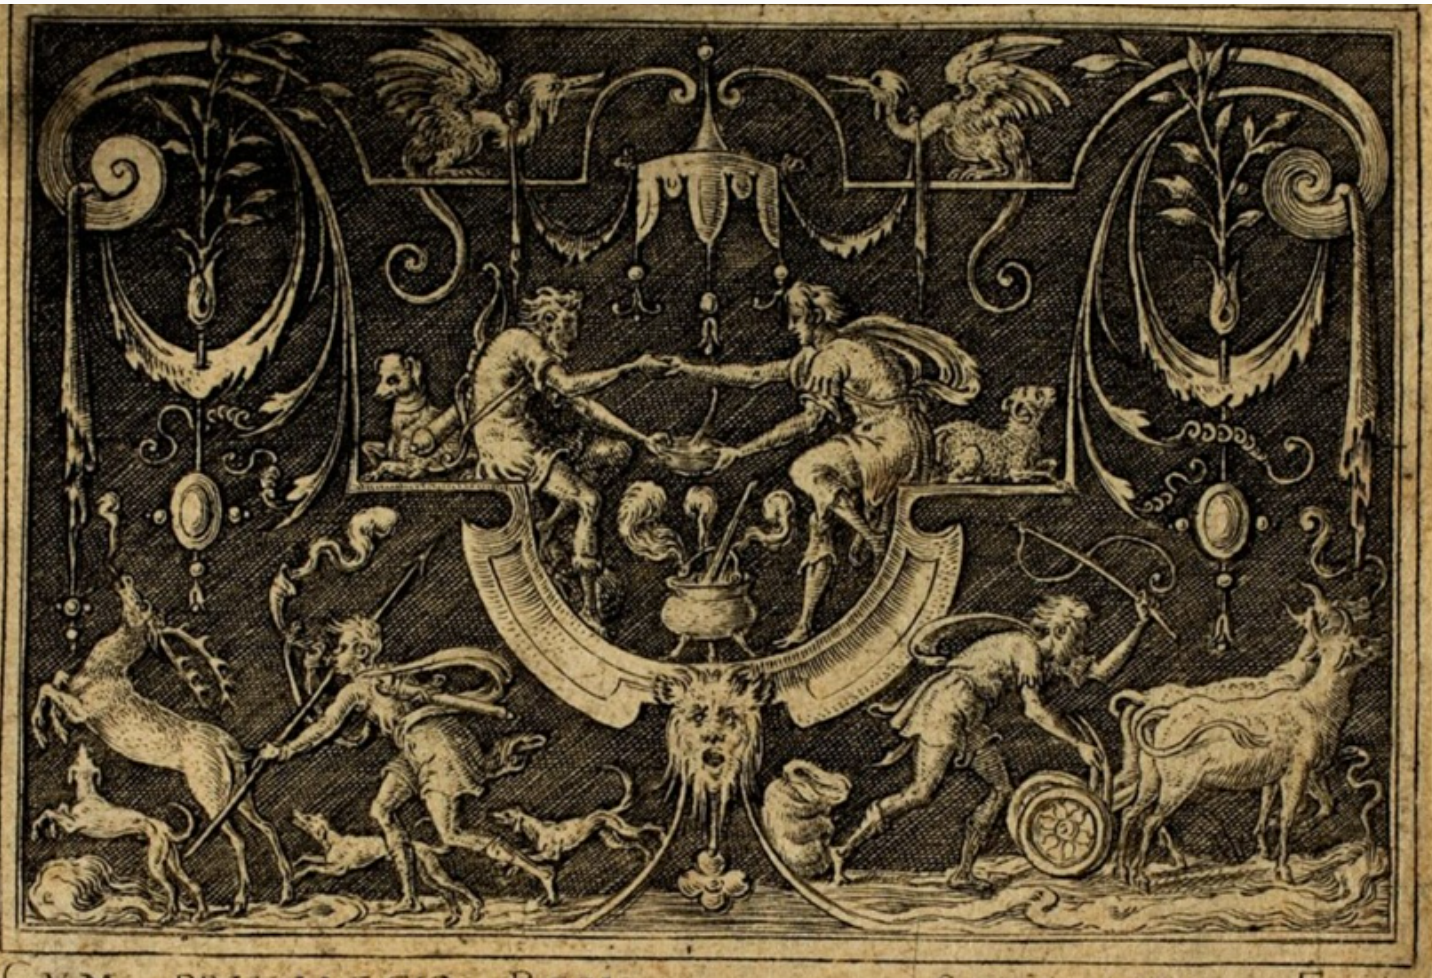 Intricate light brown and black print of two brothers holding one hand and holding a bowl of stew with the other, surrounded by other hunters and critters and decorations.